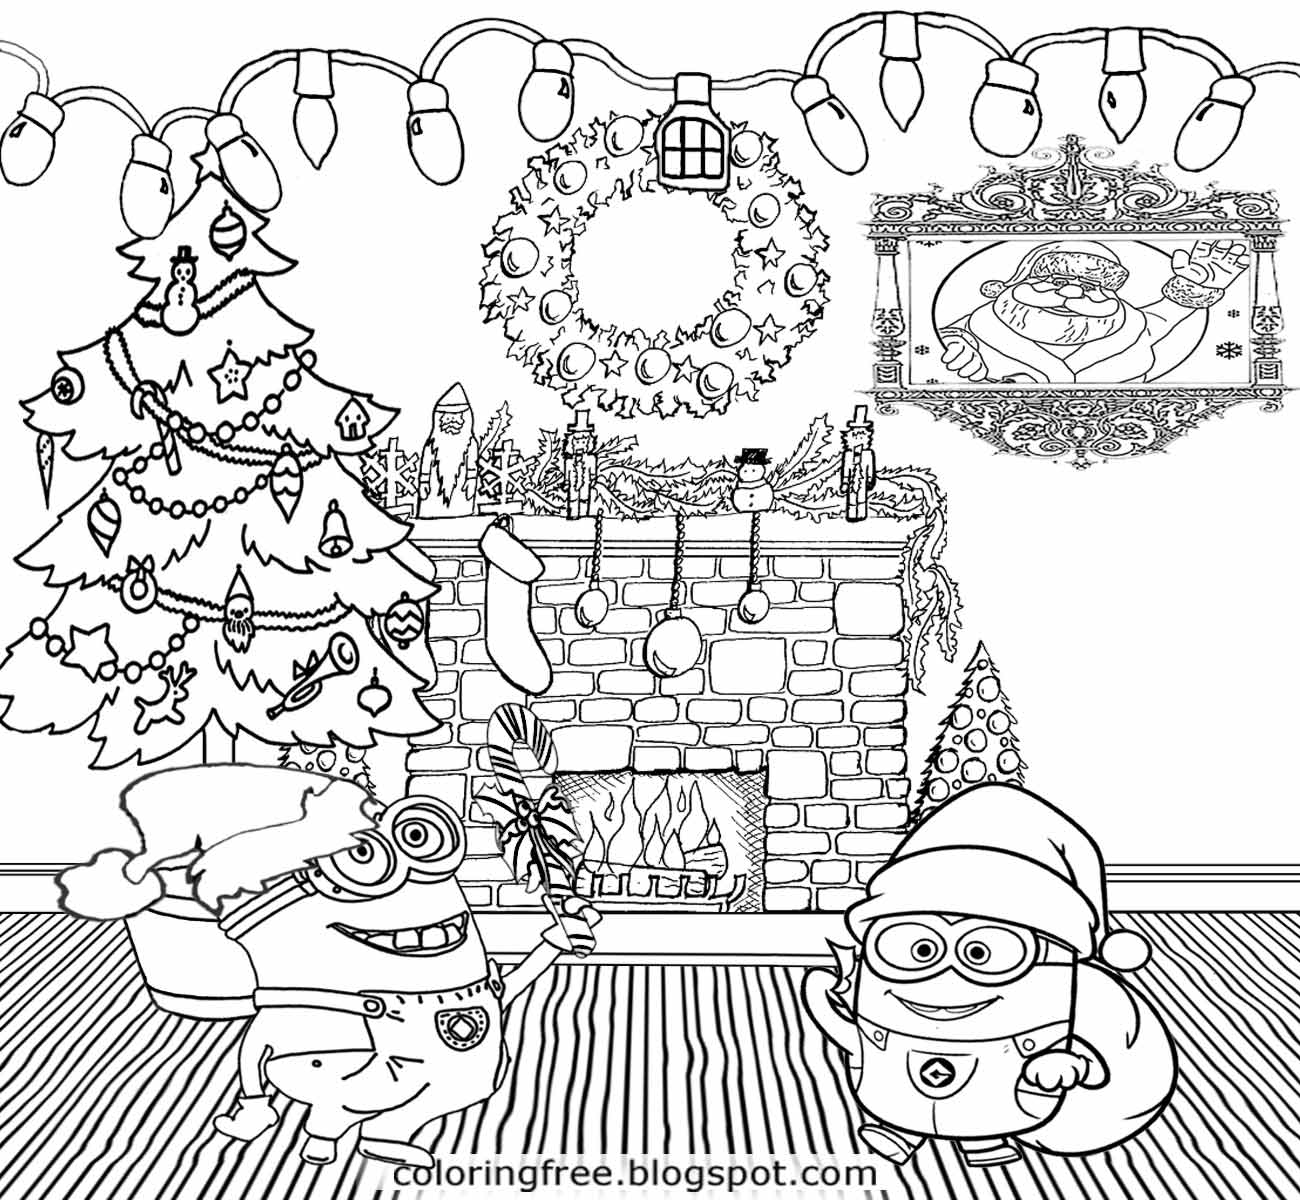 1300x1200 Exclusive Colossians Coloring Page Refund